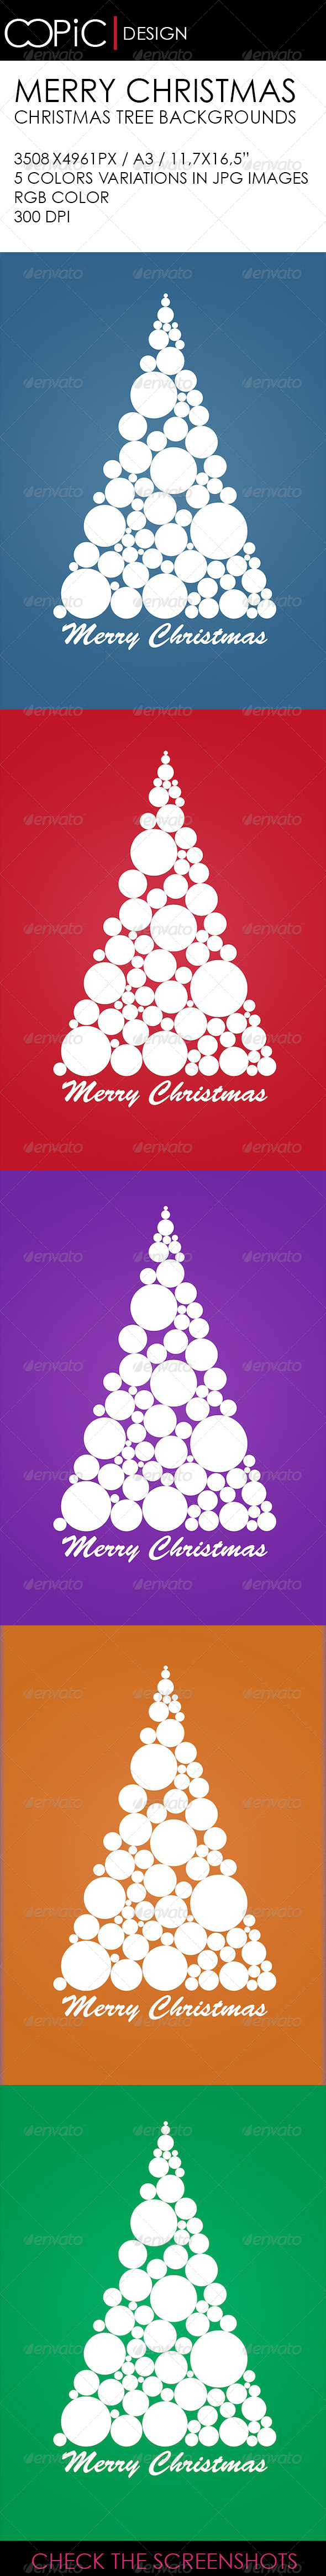 GraphicRiver Abstract Christmas Greeting 5885784